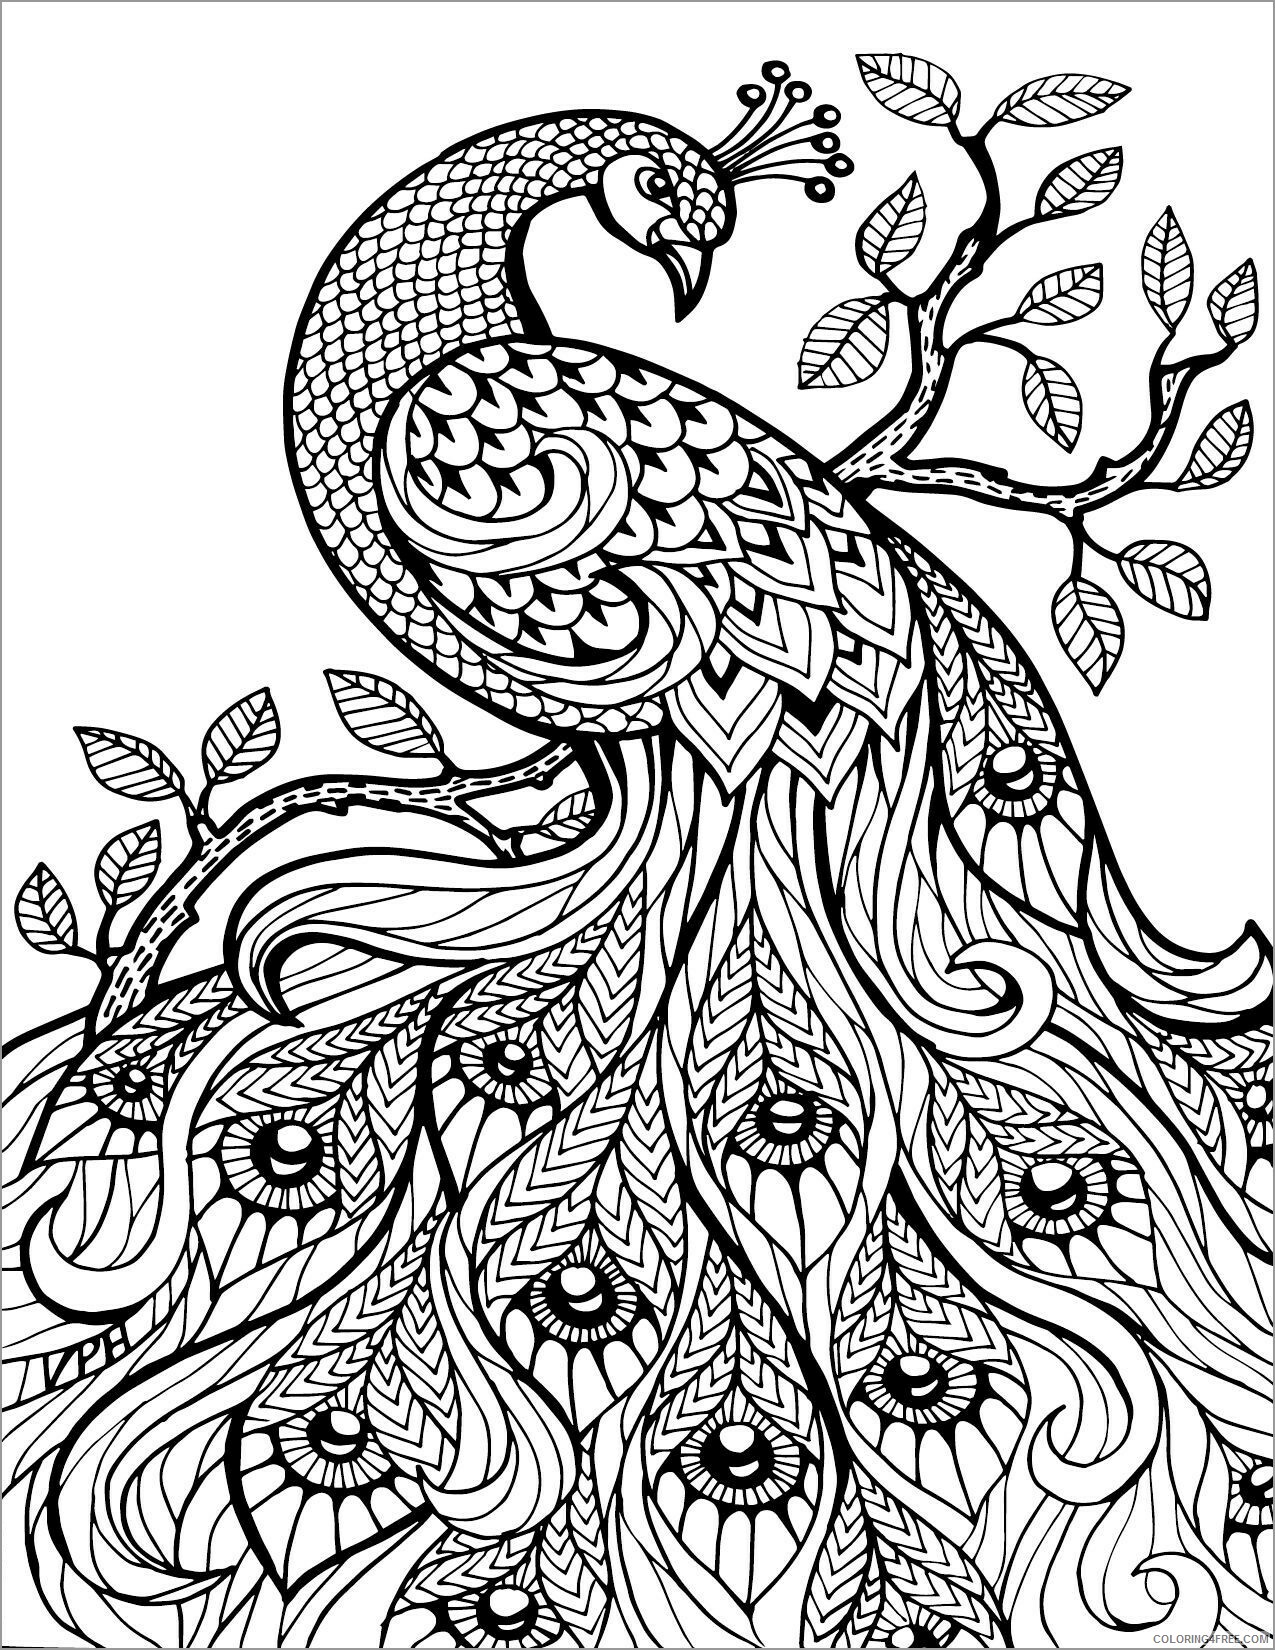 Abstract Coloring Pages Adult Abstract Animals Peacock Printable 2020 021 Coloring4free Coloring4free Com